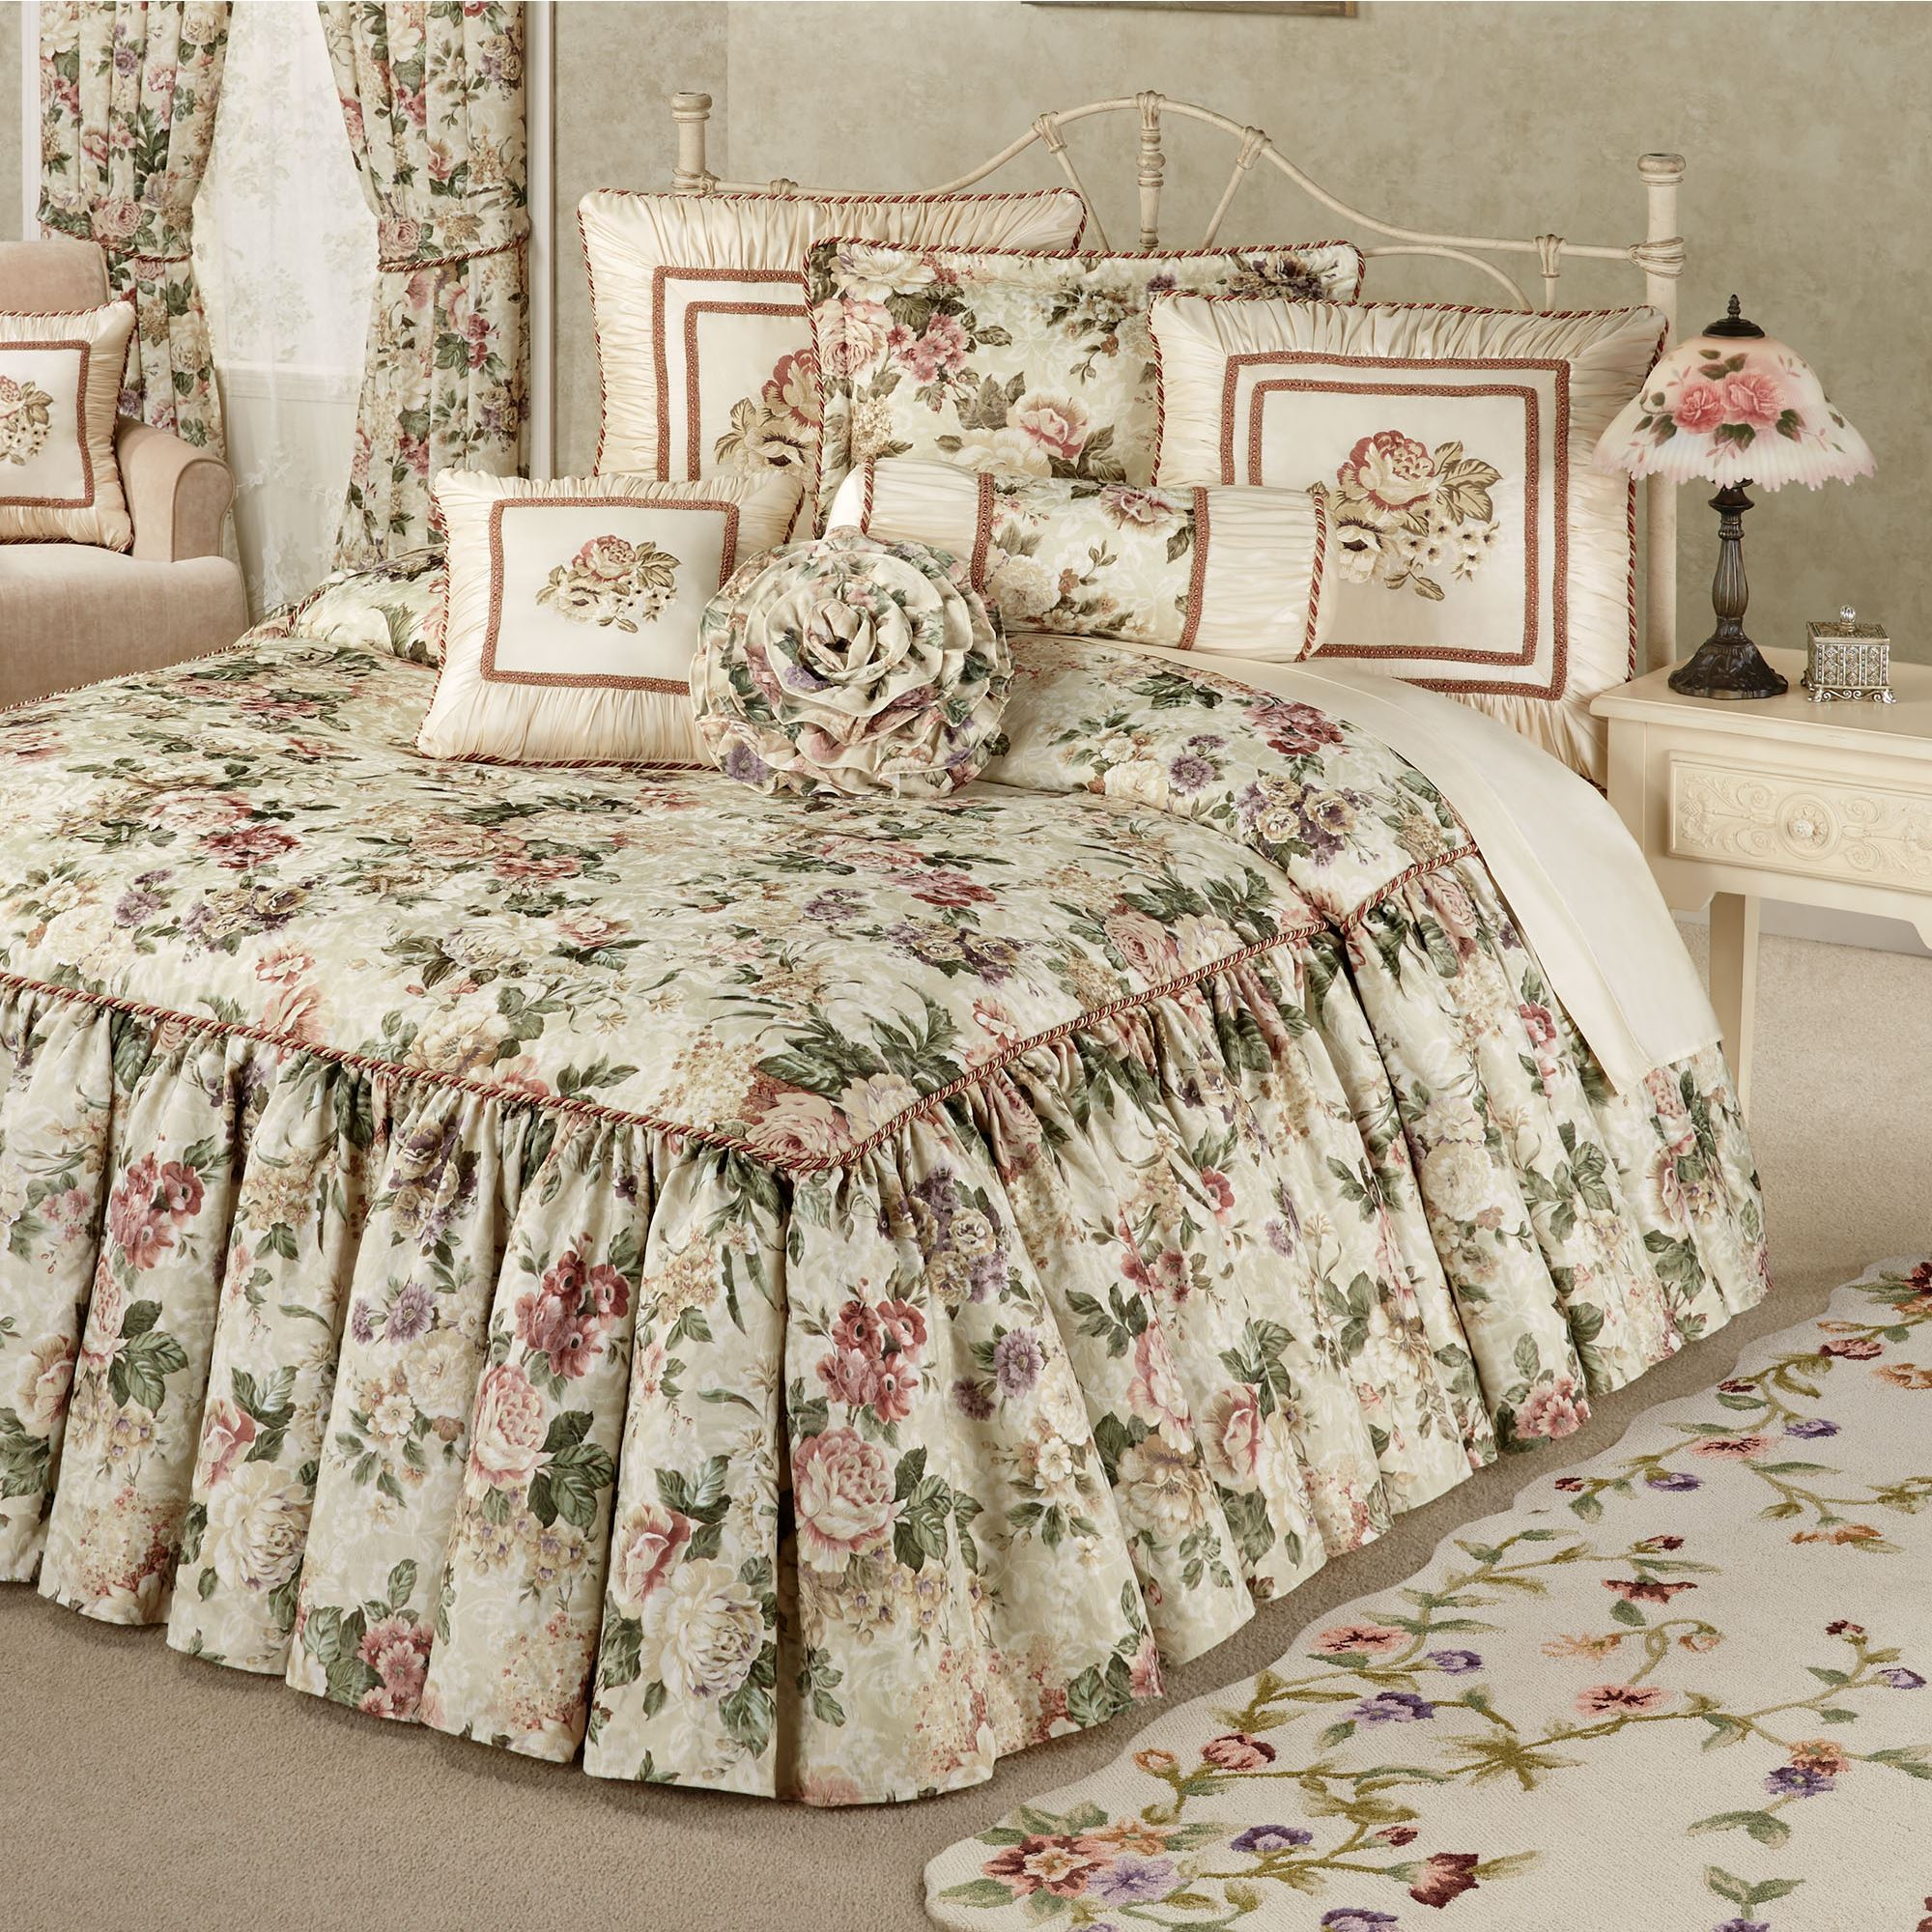 Image result for cream embroidered bedspread